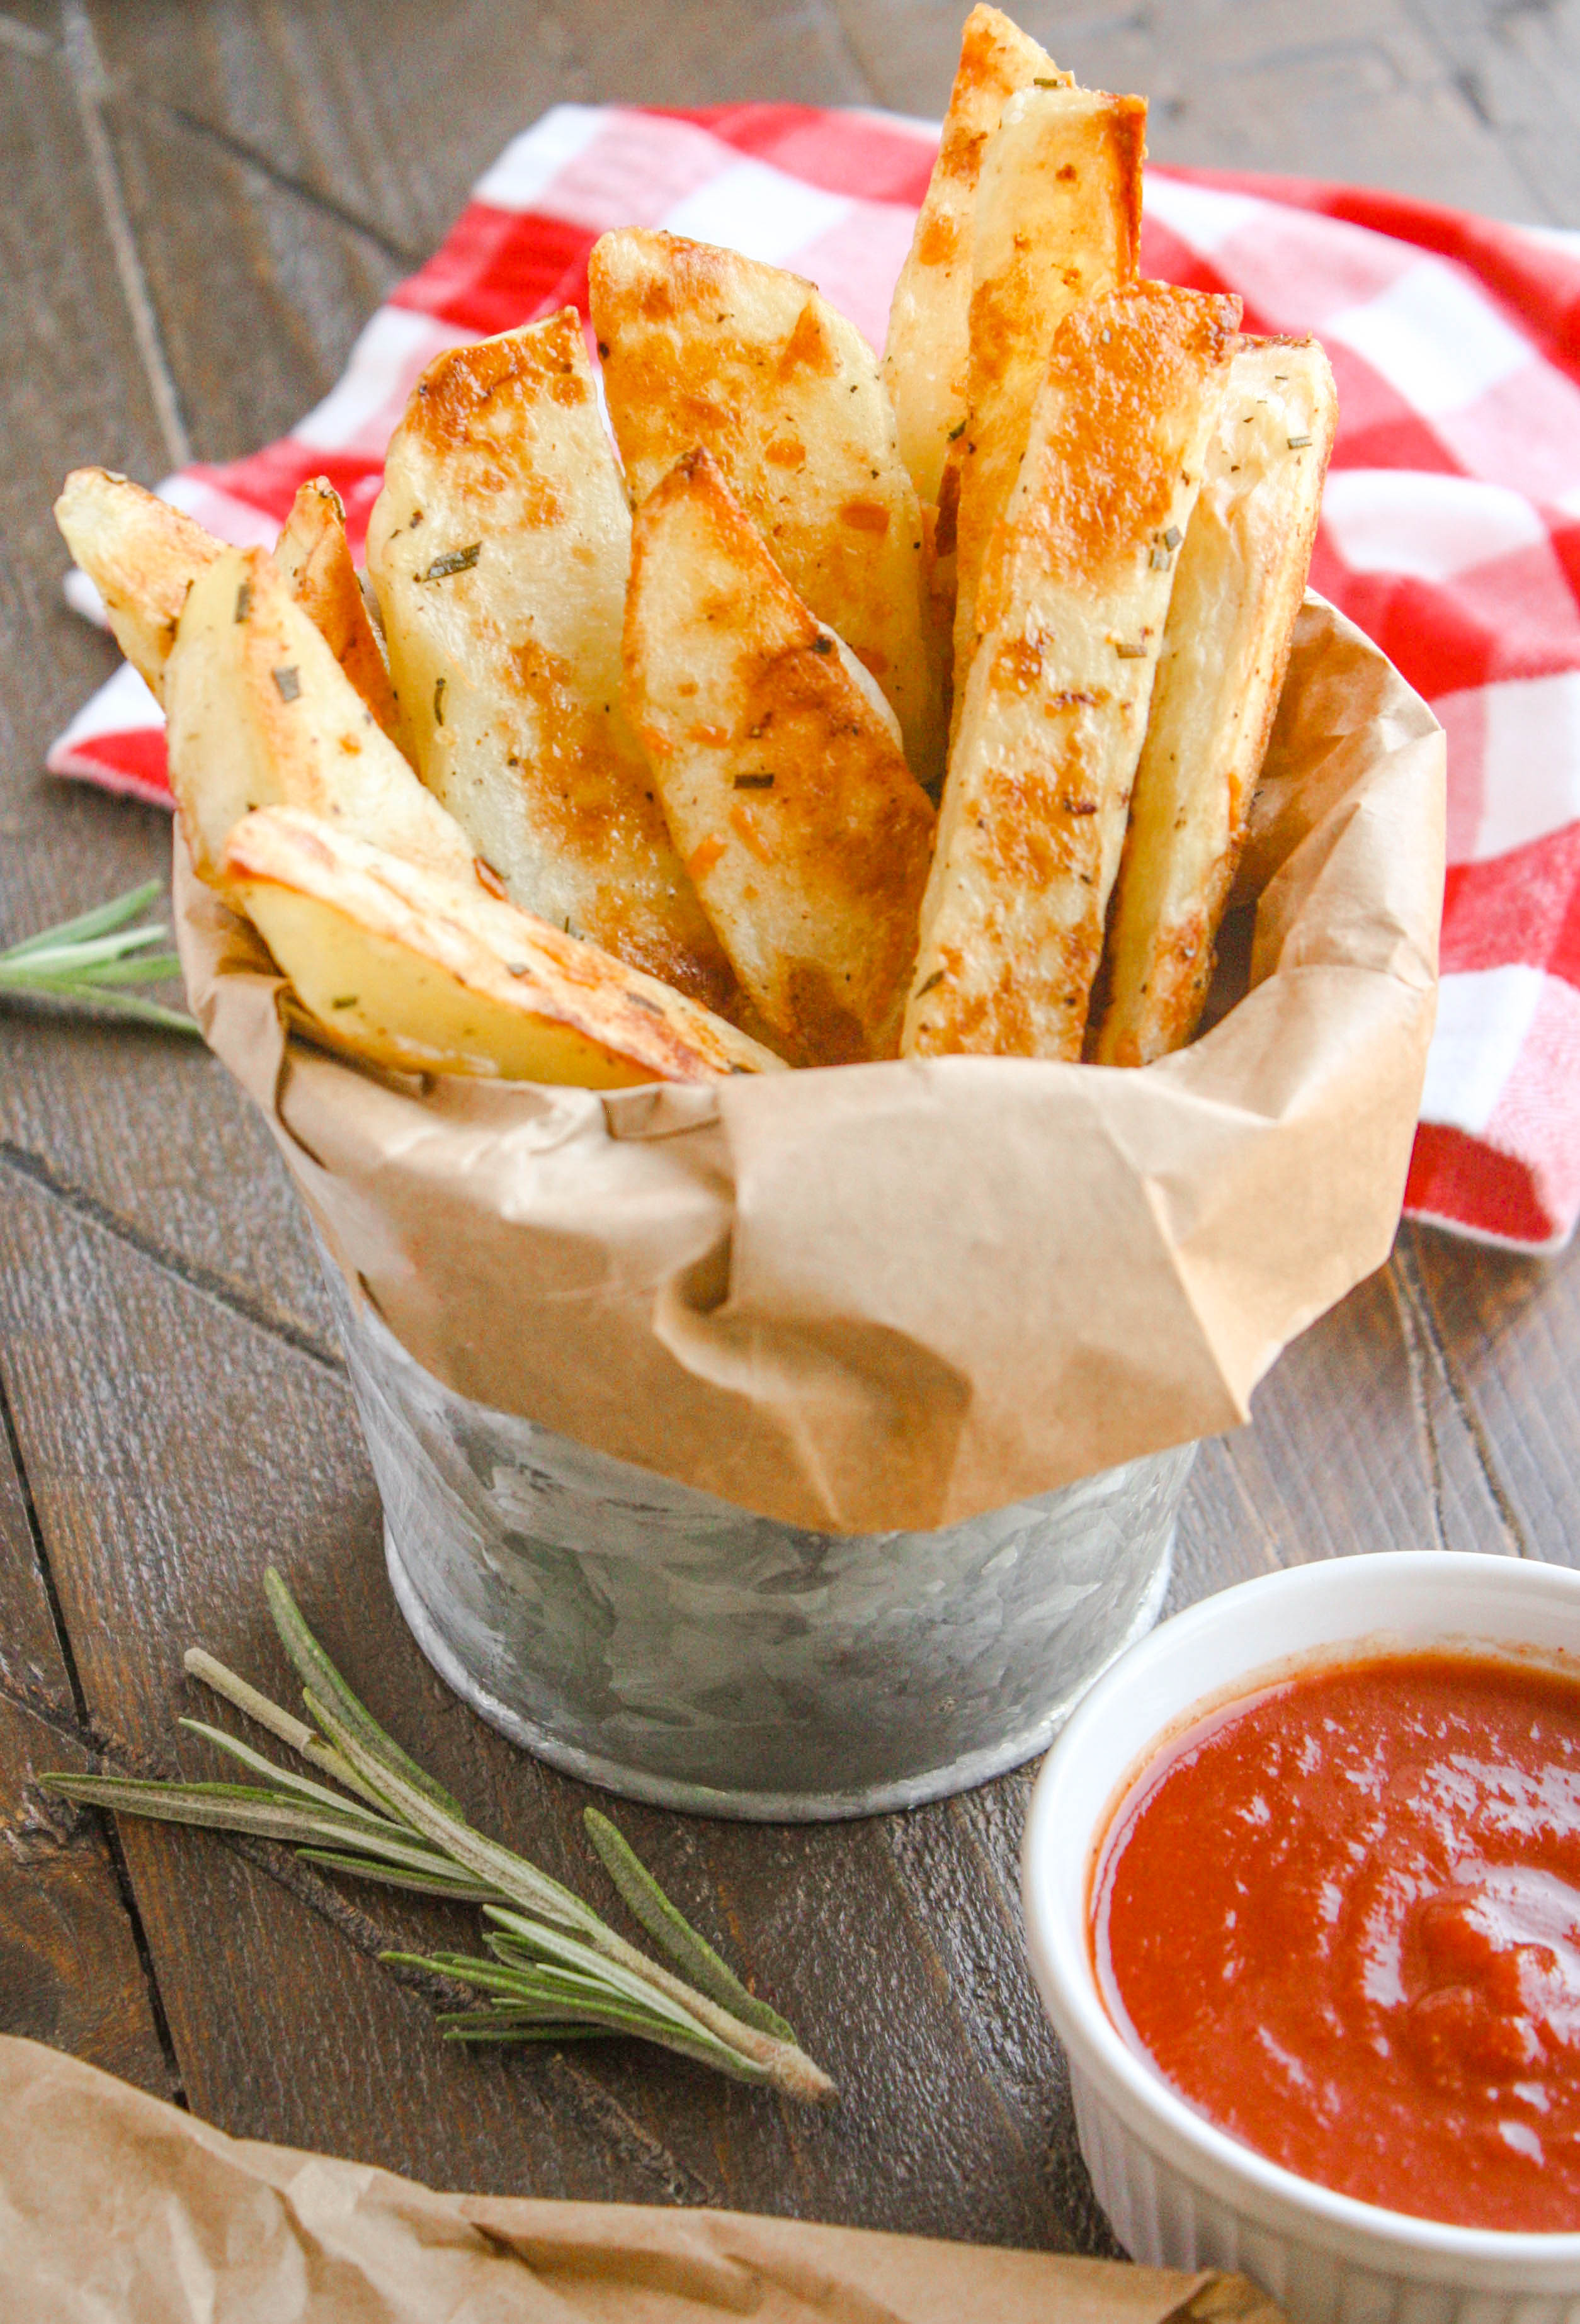 Oven Baked Rosemary Steak Fries Homemade Ketchup is the perfect side to any meal! You'll love this easy-to-make classic side!